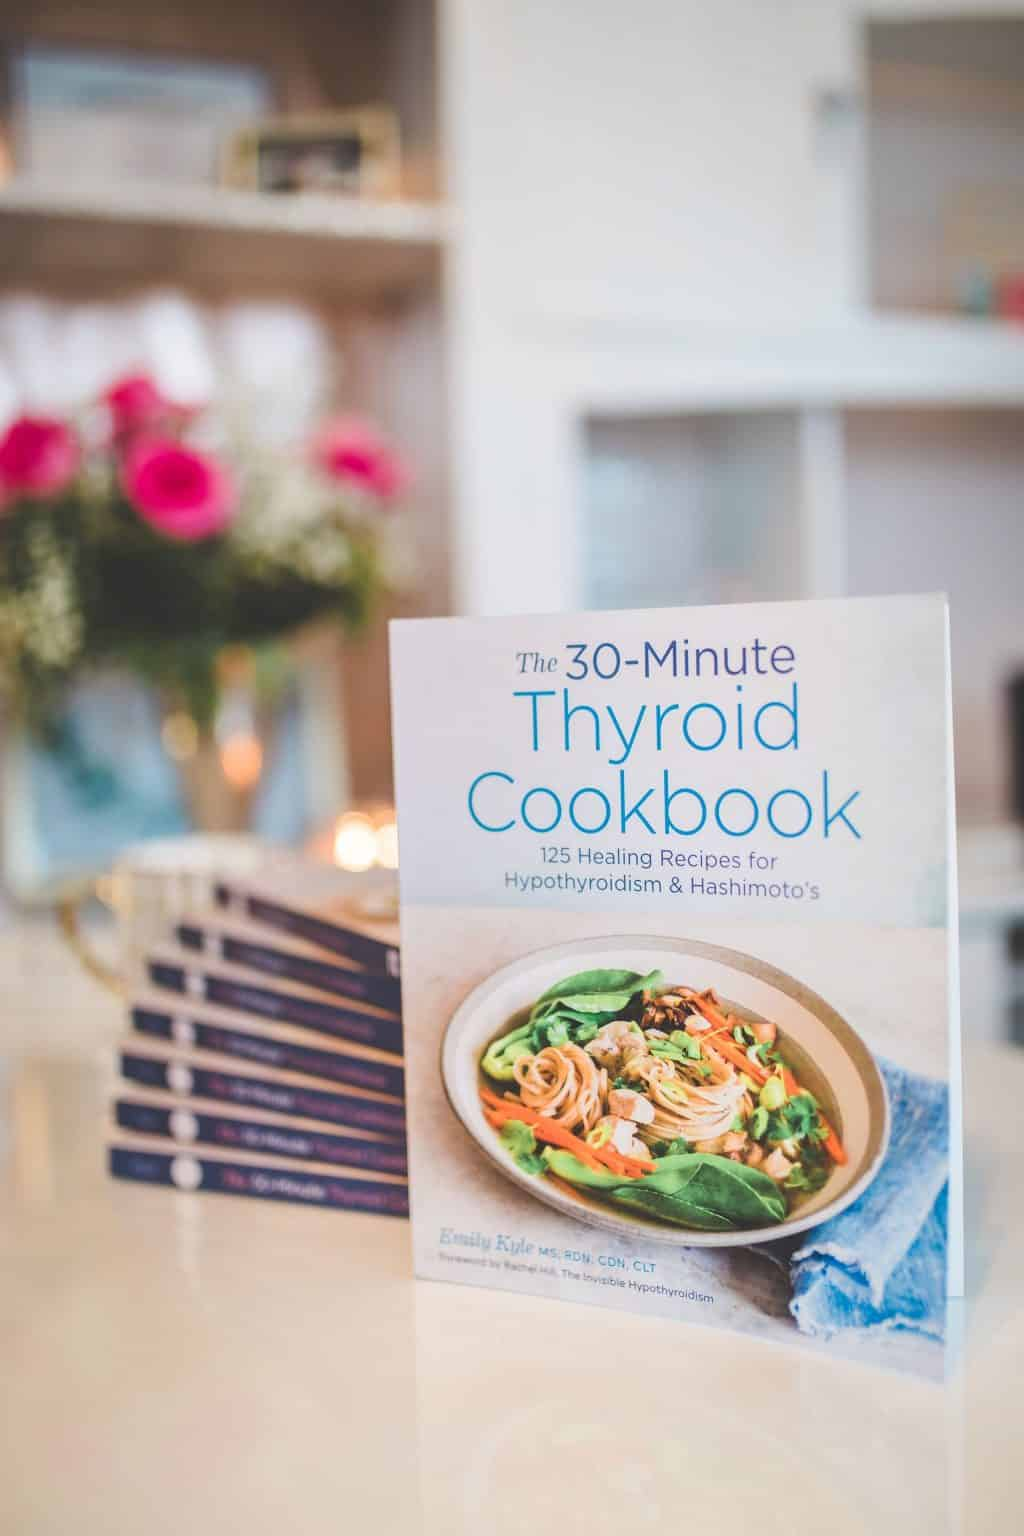 The 30-Minute Thyroid Cookbook